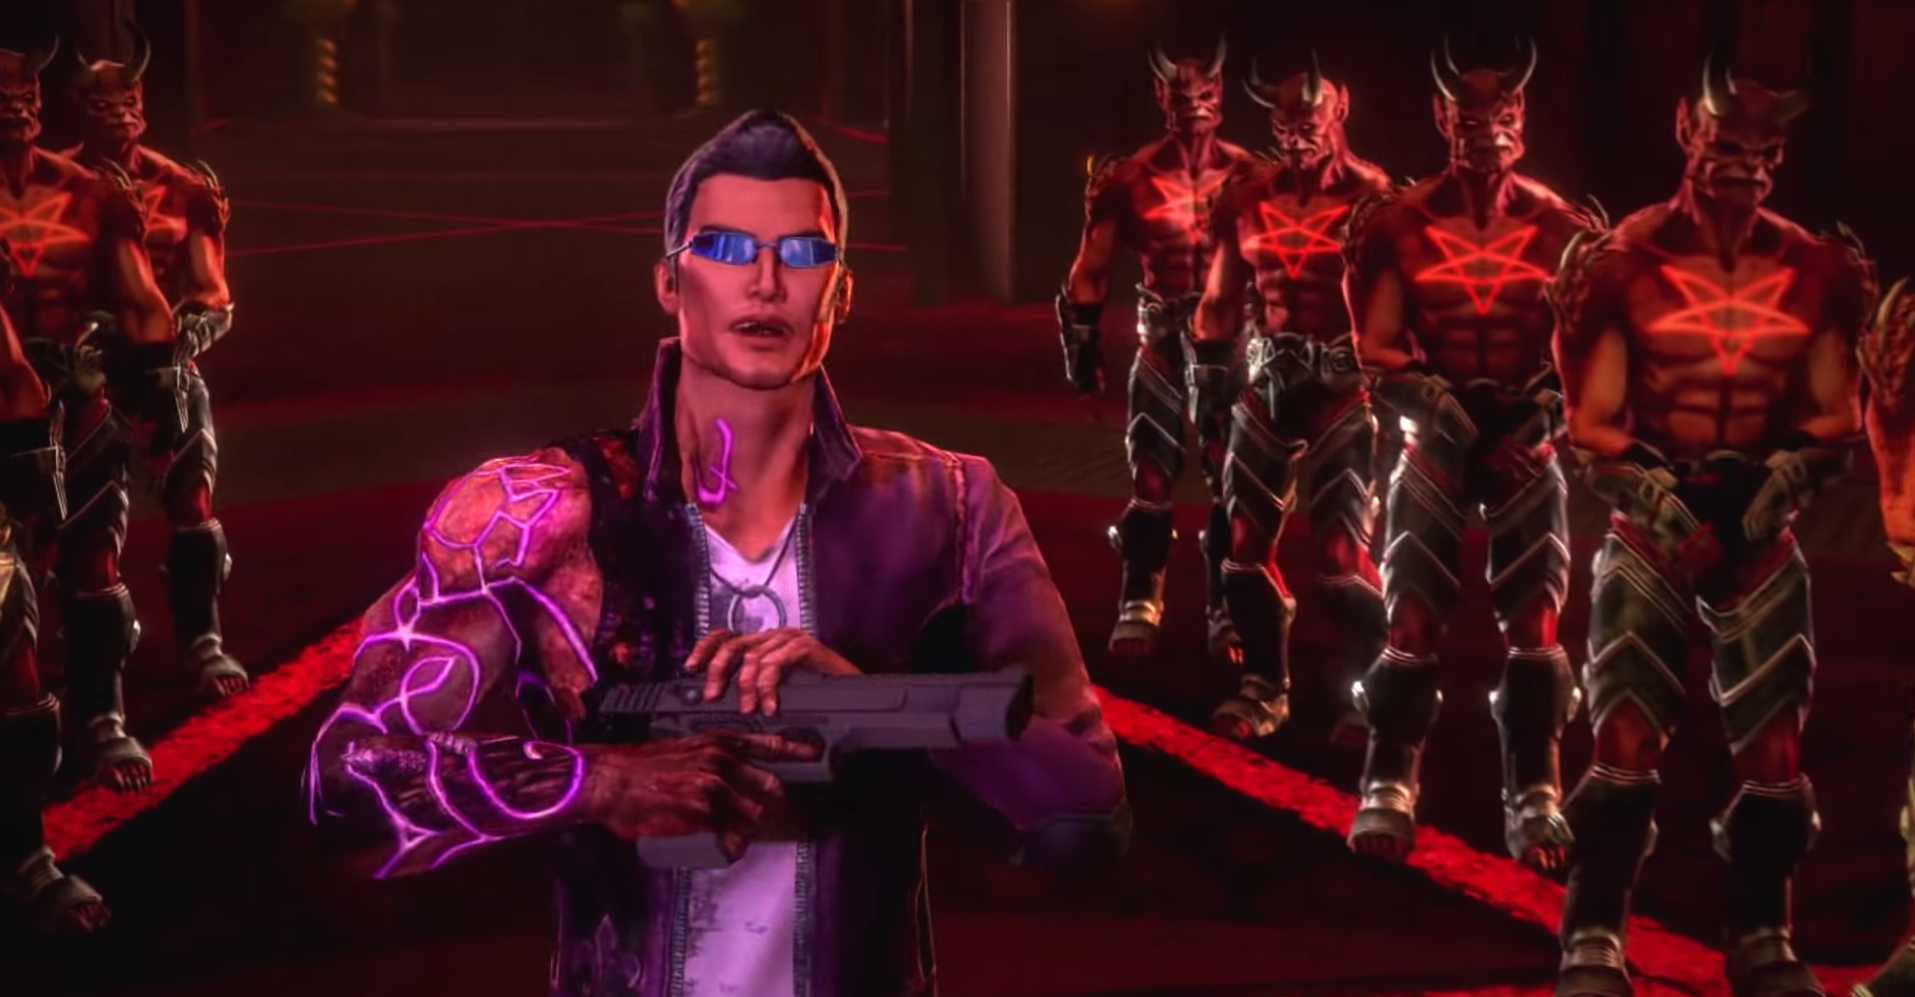 saints-row-gat-goes-to-hell